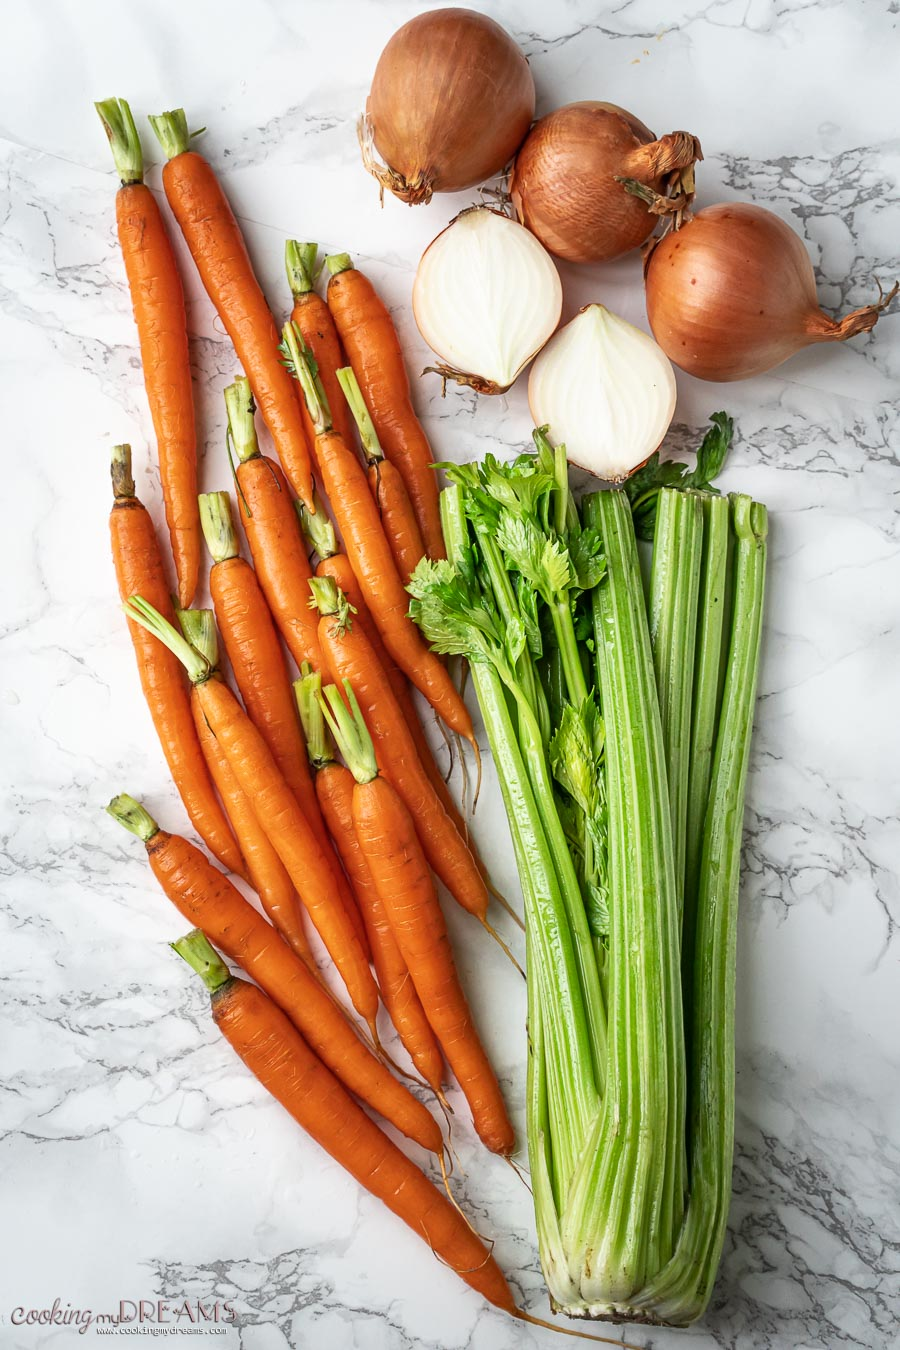 carrots, celery and onions on a board